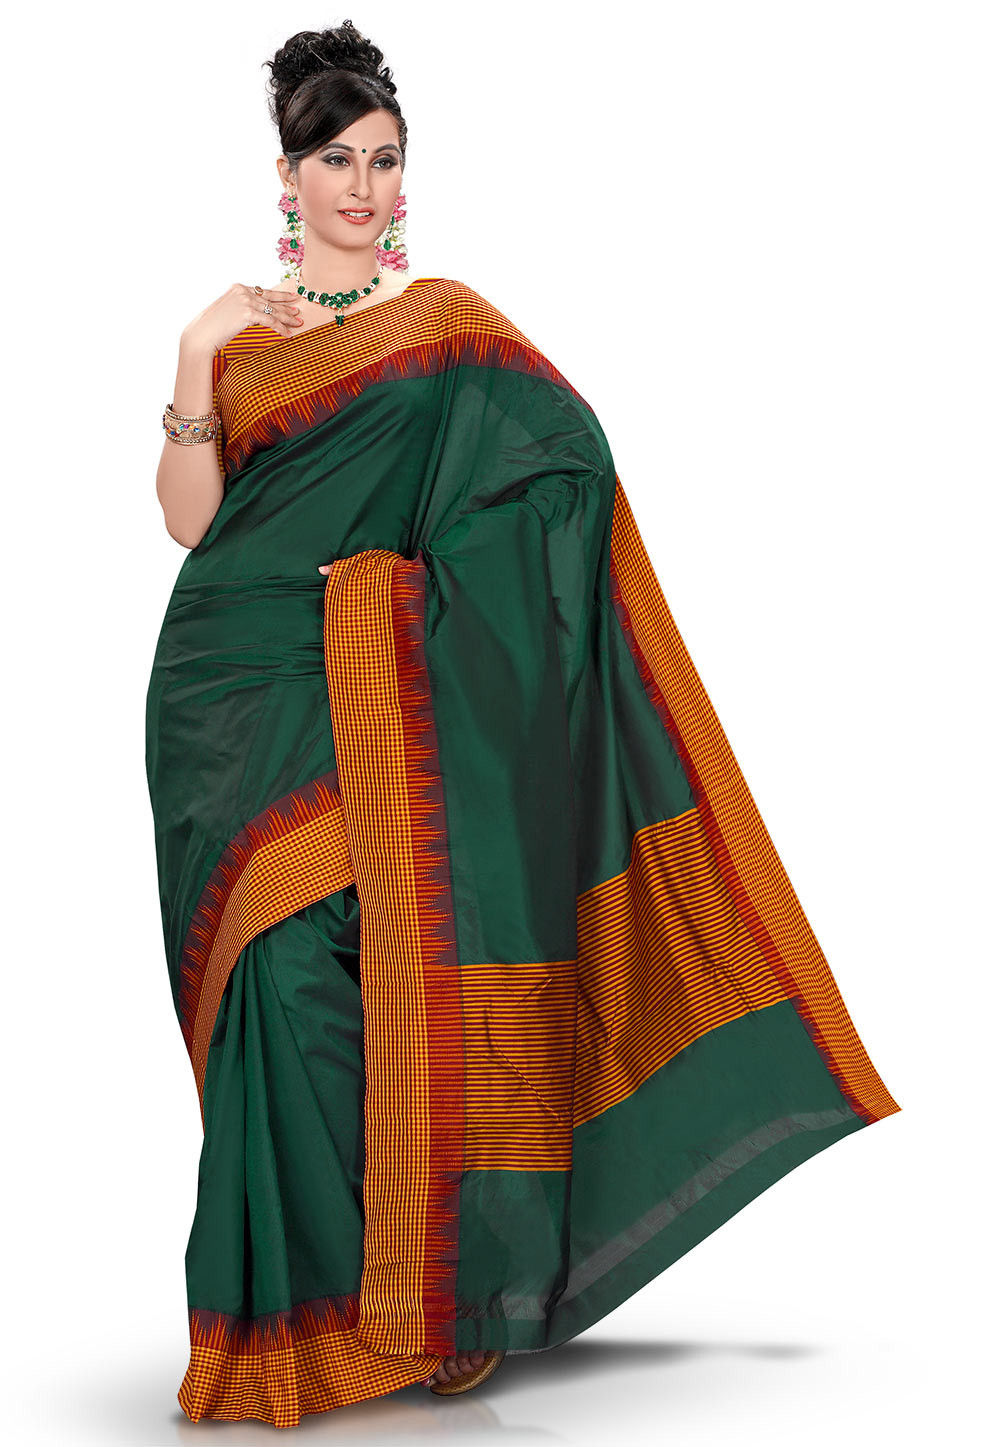 Woven Kanchipuram Saree in Dark Green